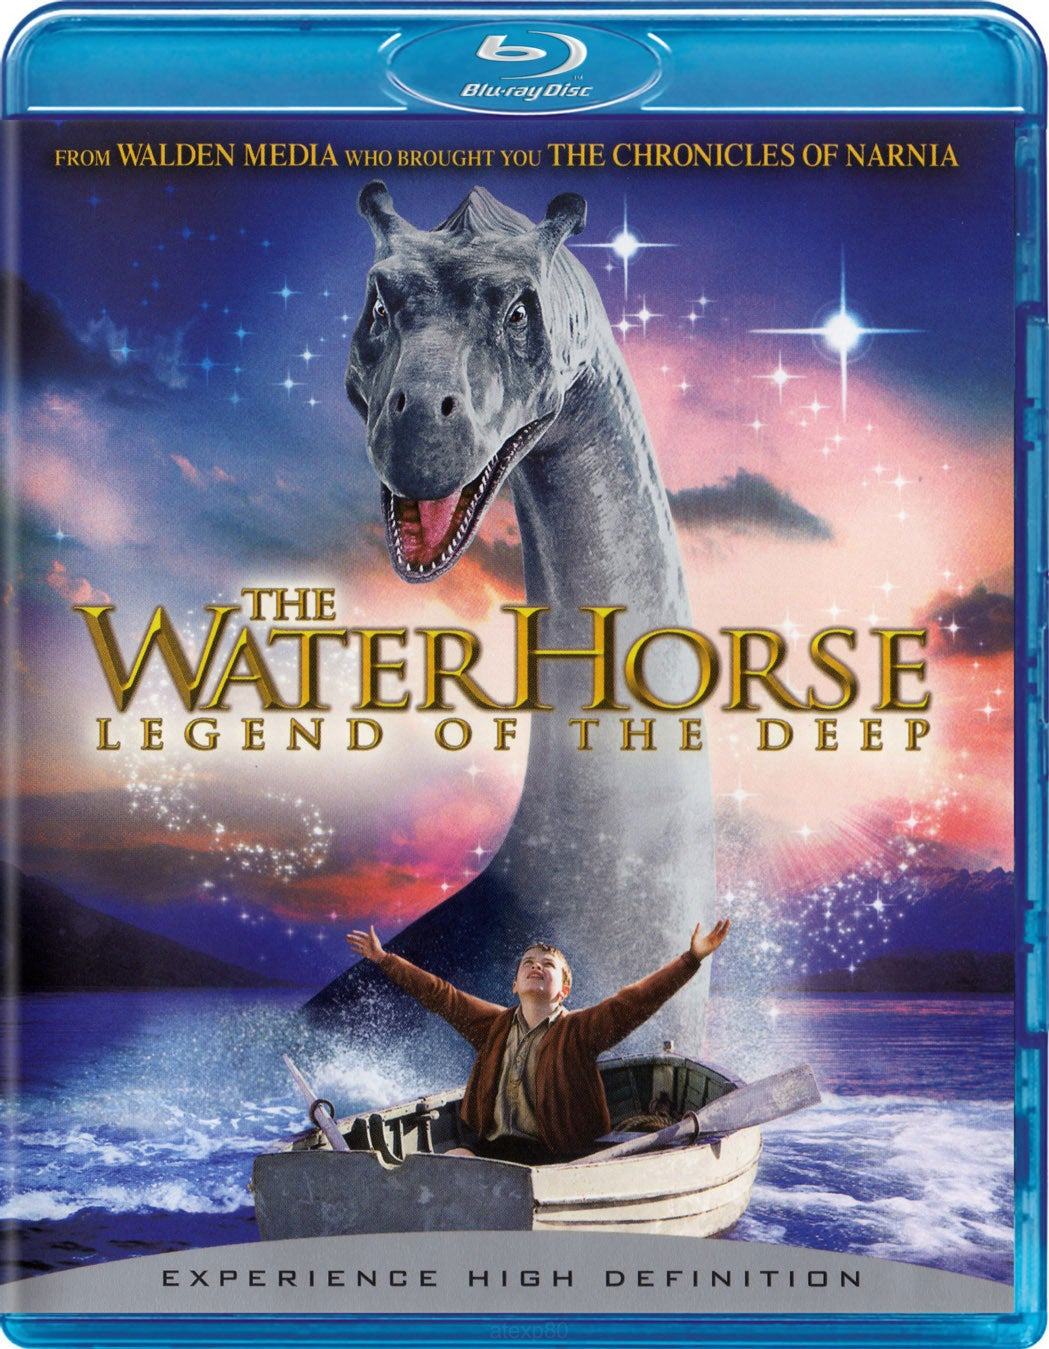 The Water Horse: Legend of the Deep (Blu-ray Disc)